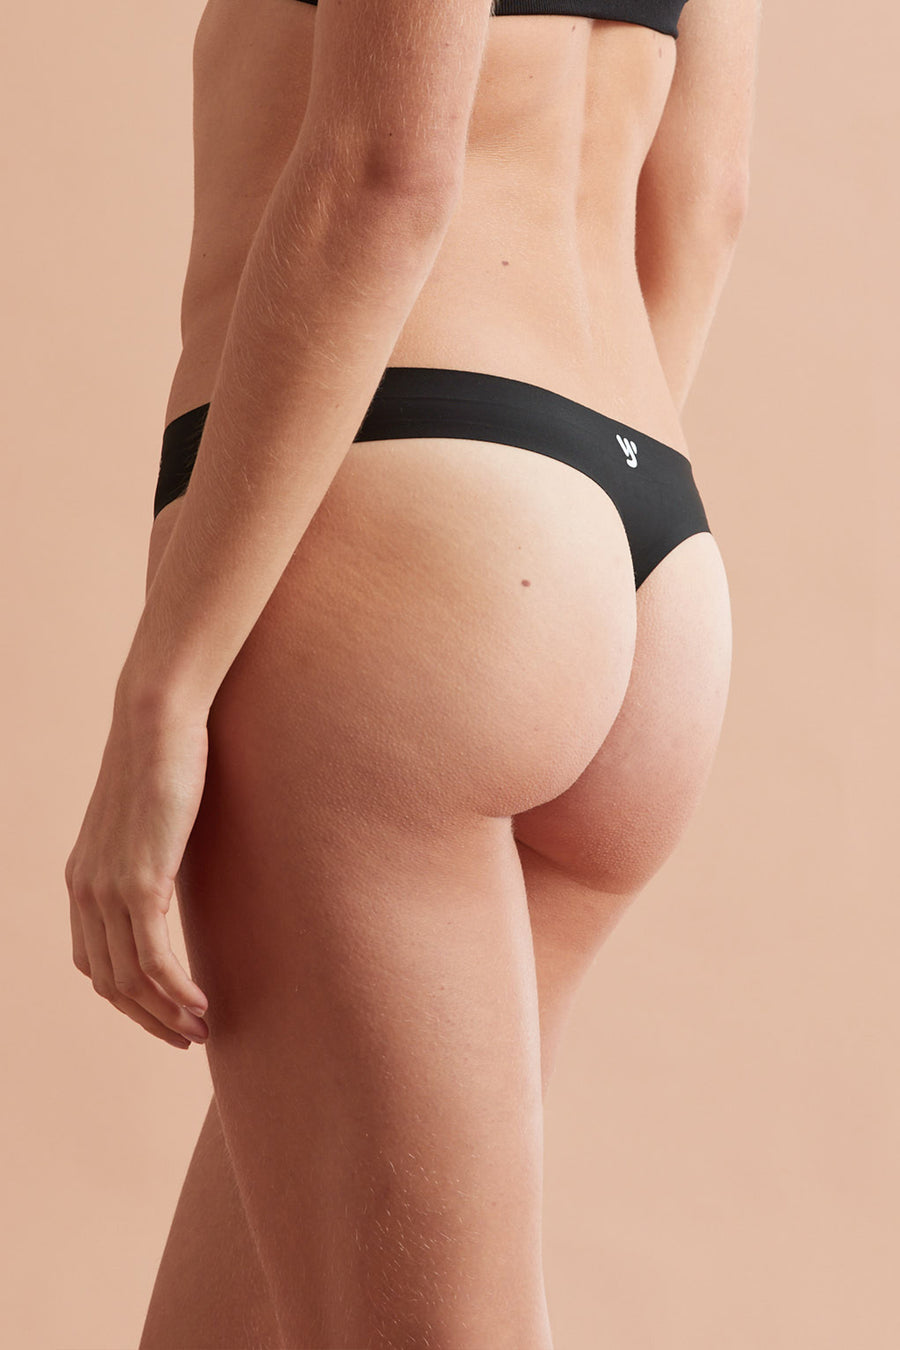 SEAMLESS G-STRING - THE 'OM-G'